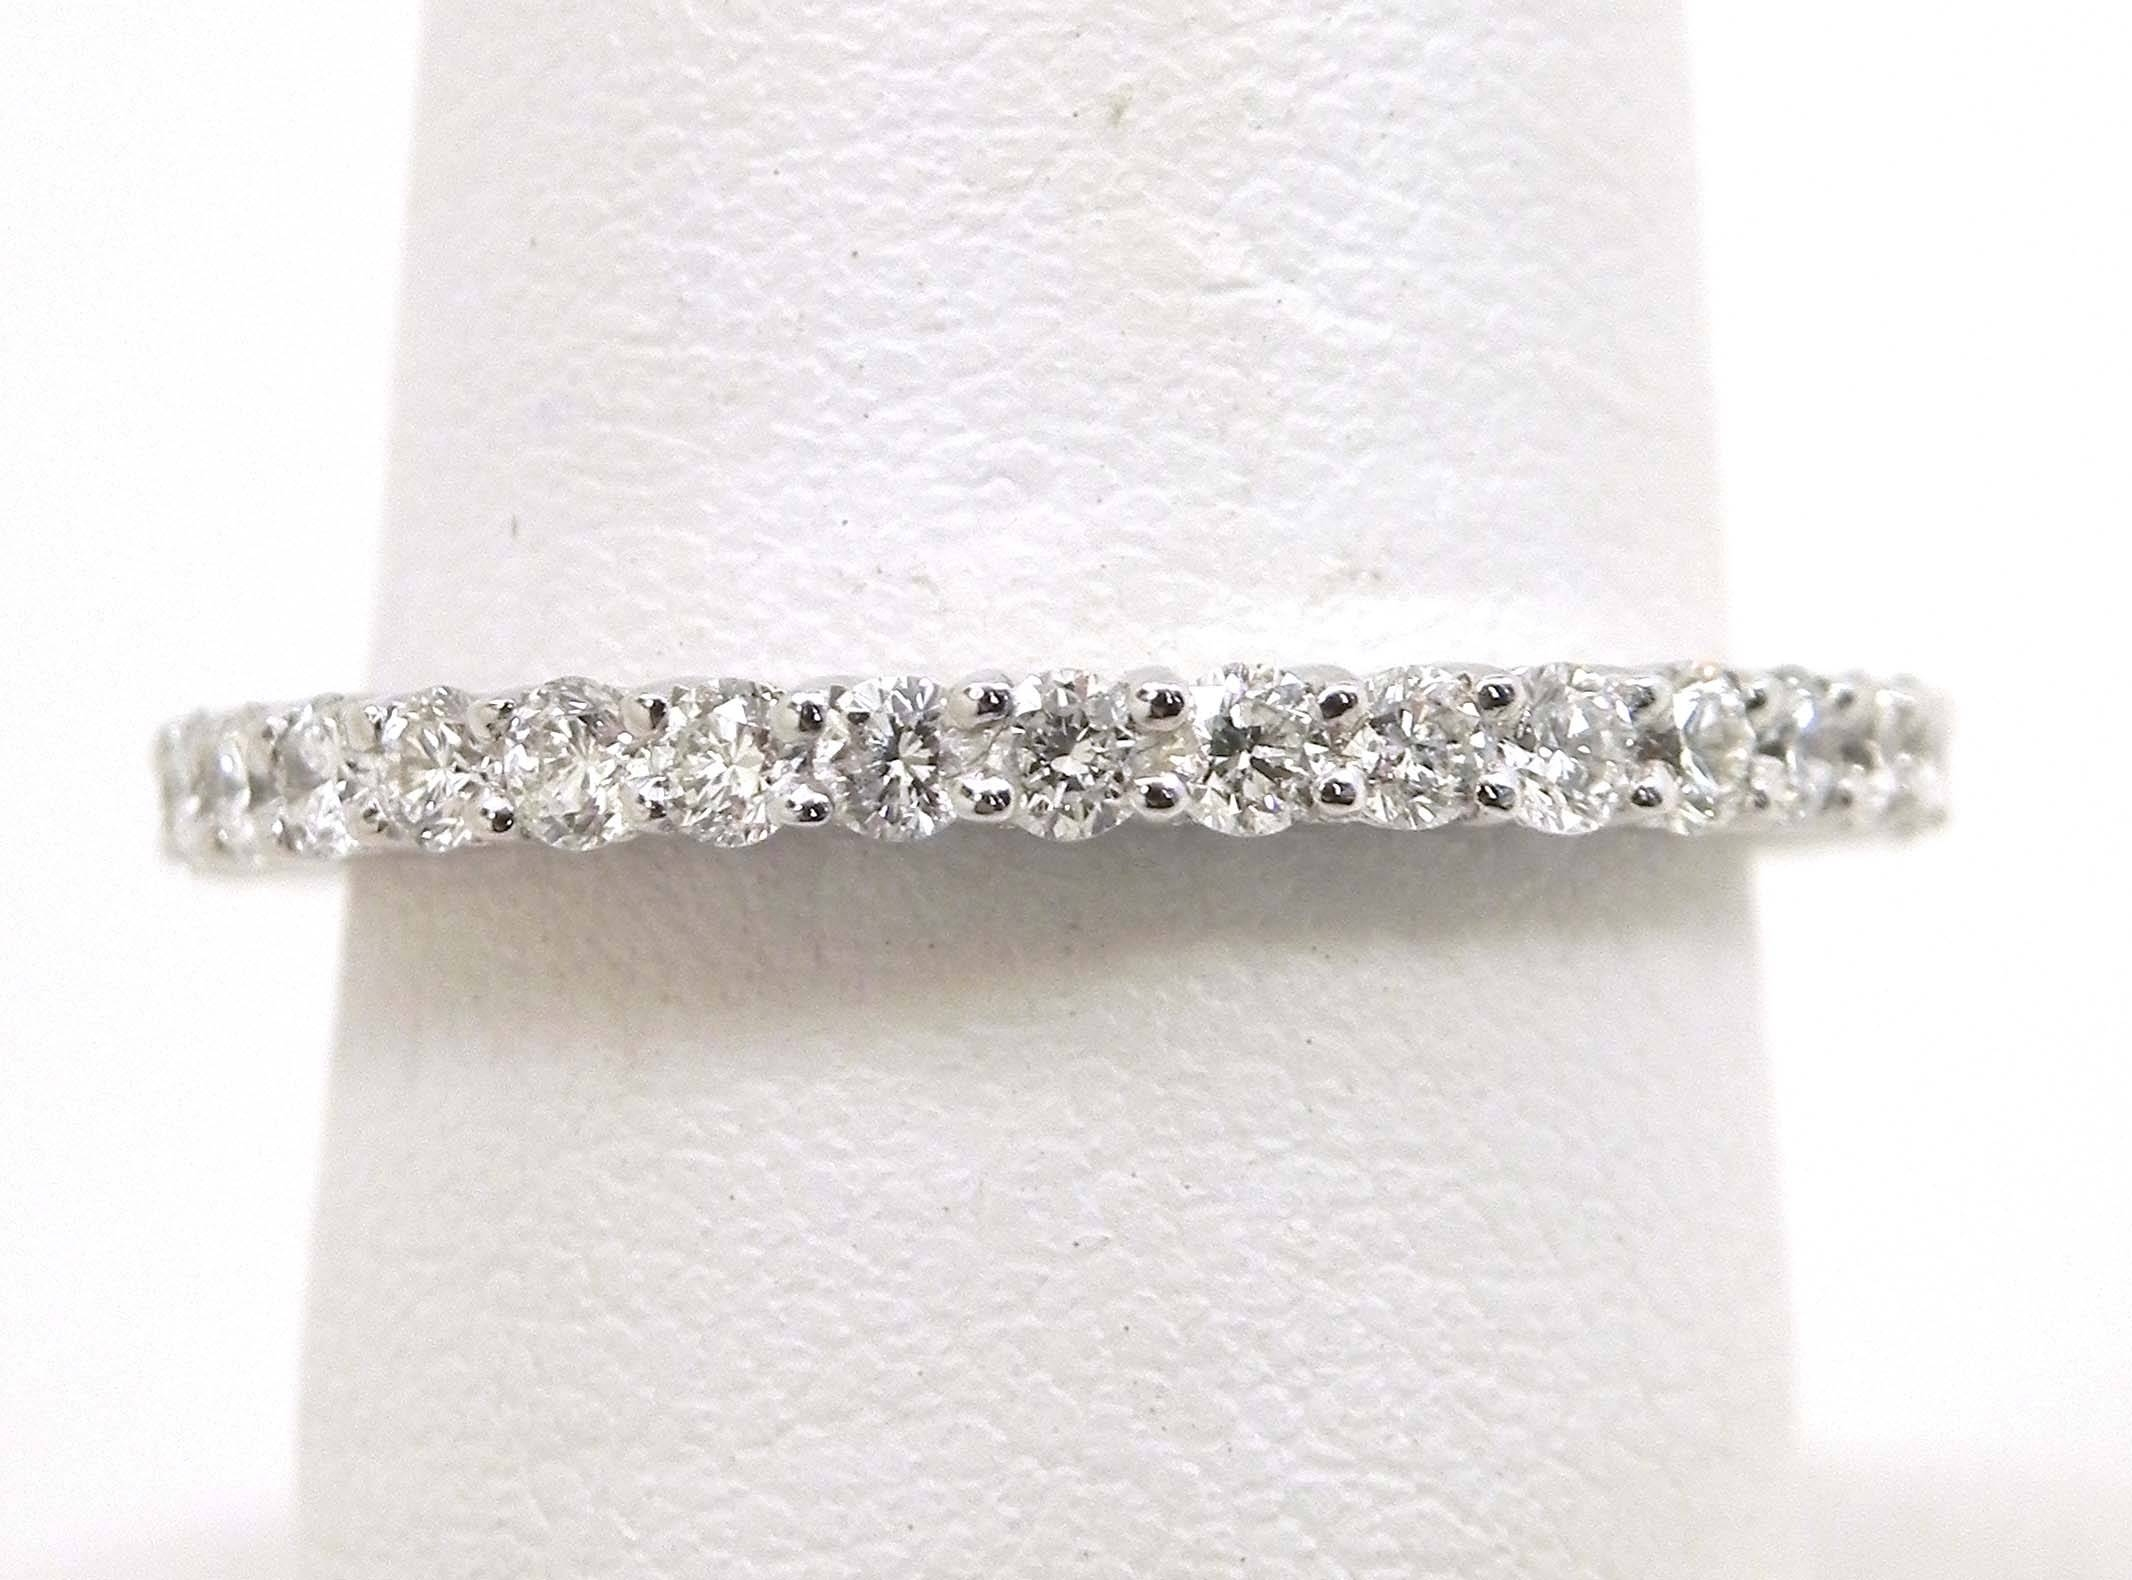 Ladies 18K White Gold 1.02 Cts. Diamonds Eternity Wedding Band With Regard To Most Popular Diamond Eternity Wedding Bands (Gallery 8 of 15)